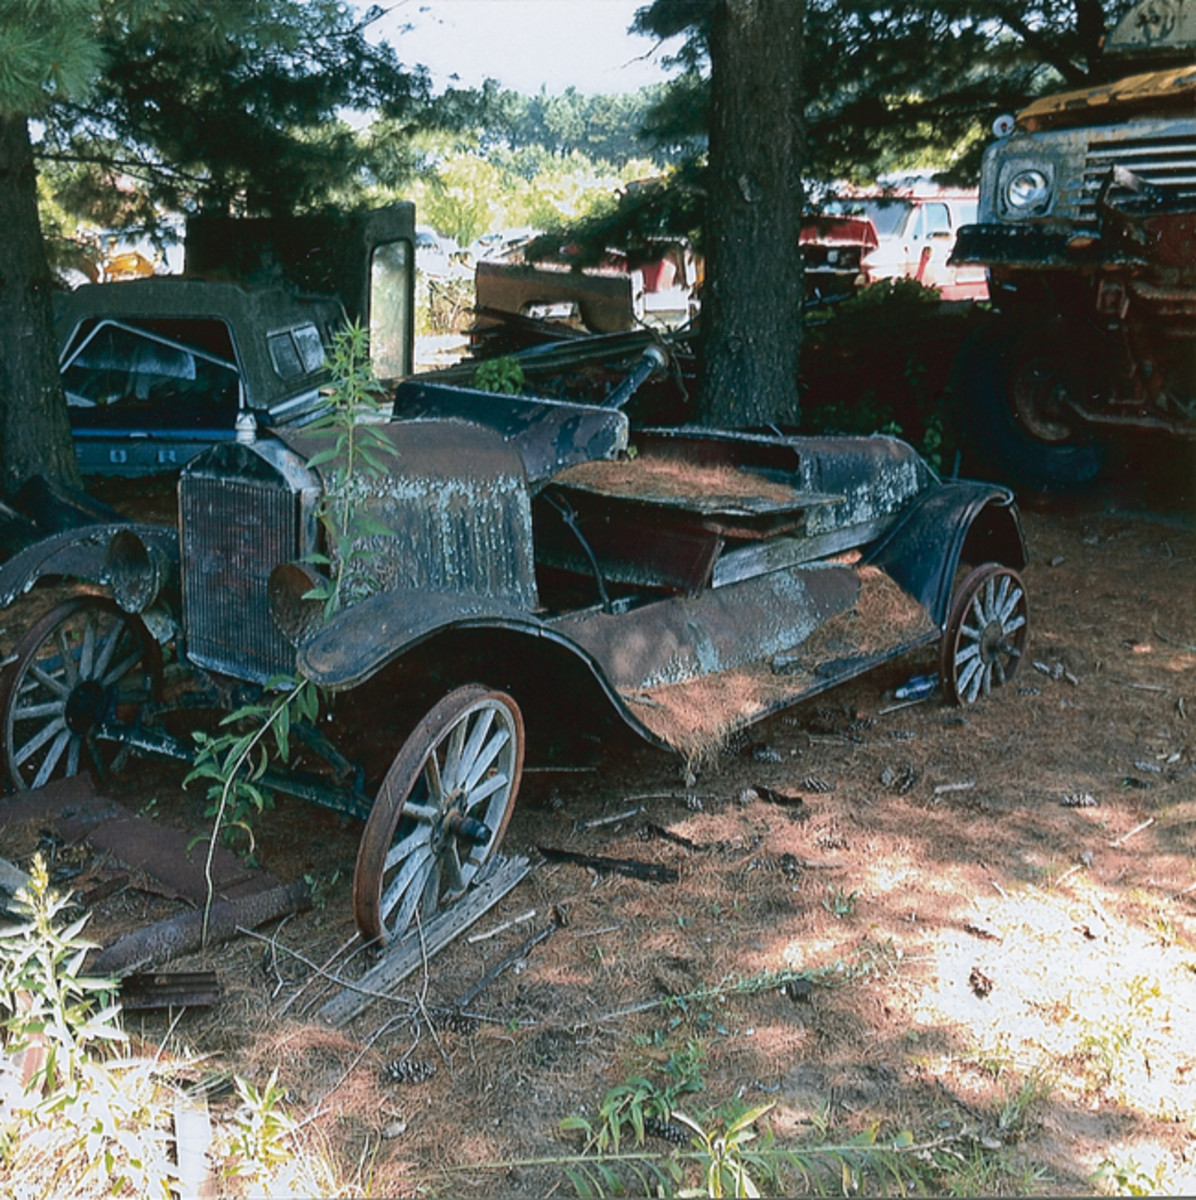 One of several old-timers in Golden Sands Salvage is what remains of this Ford Model T runabout. The T could work well as yard art, but is too far gone for restoration.